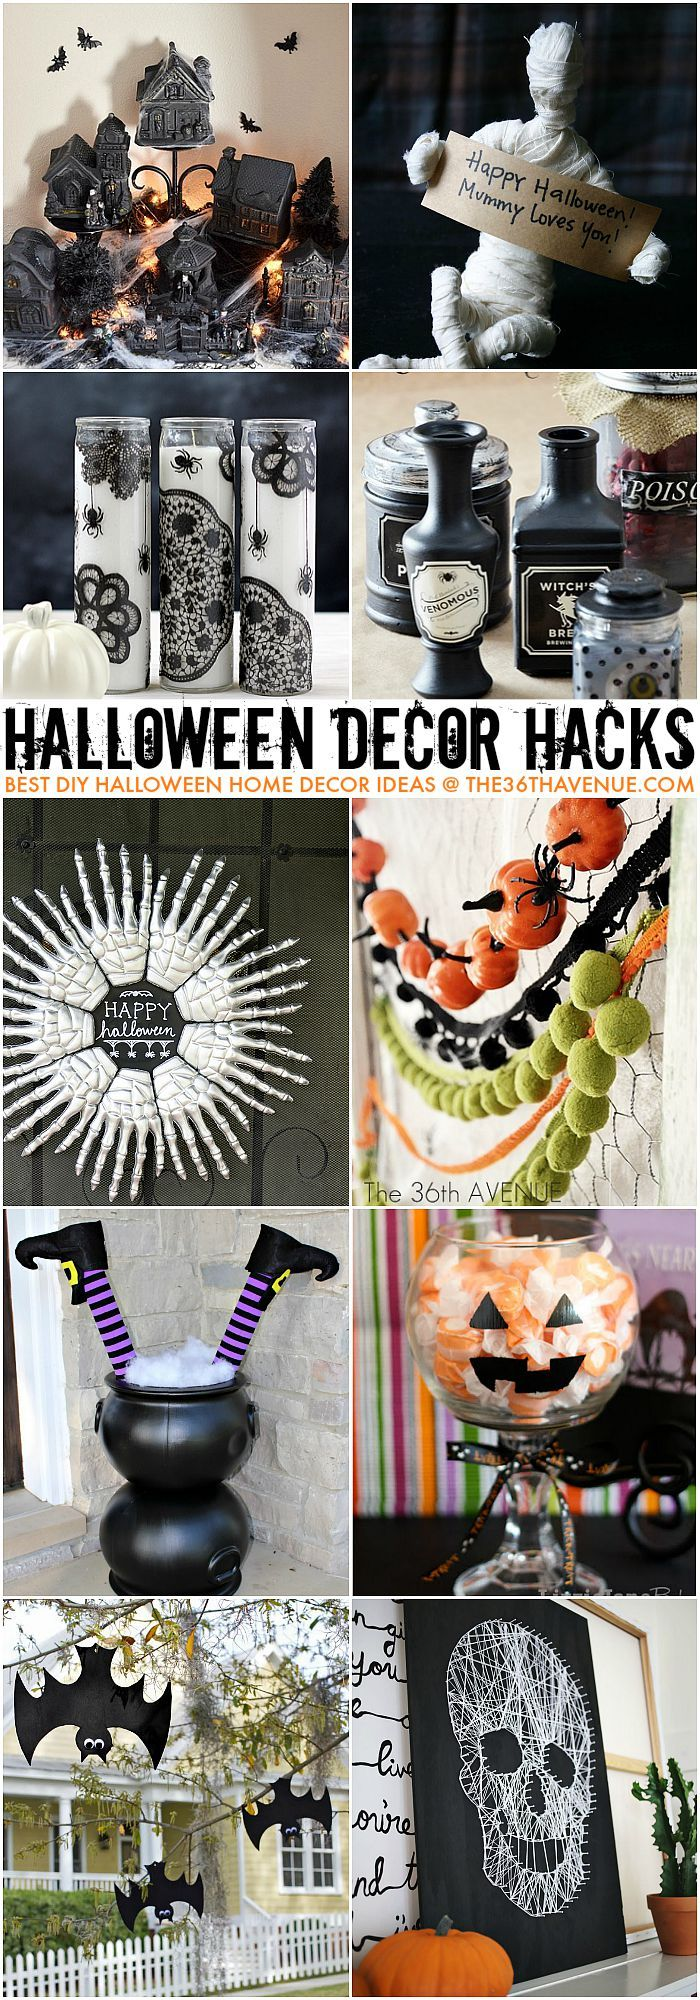 Halloween decor diy halloween ideas best of pinterest - Decoracion para halloween ...